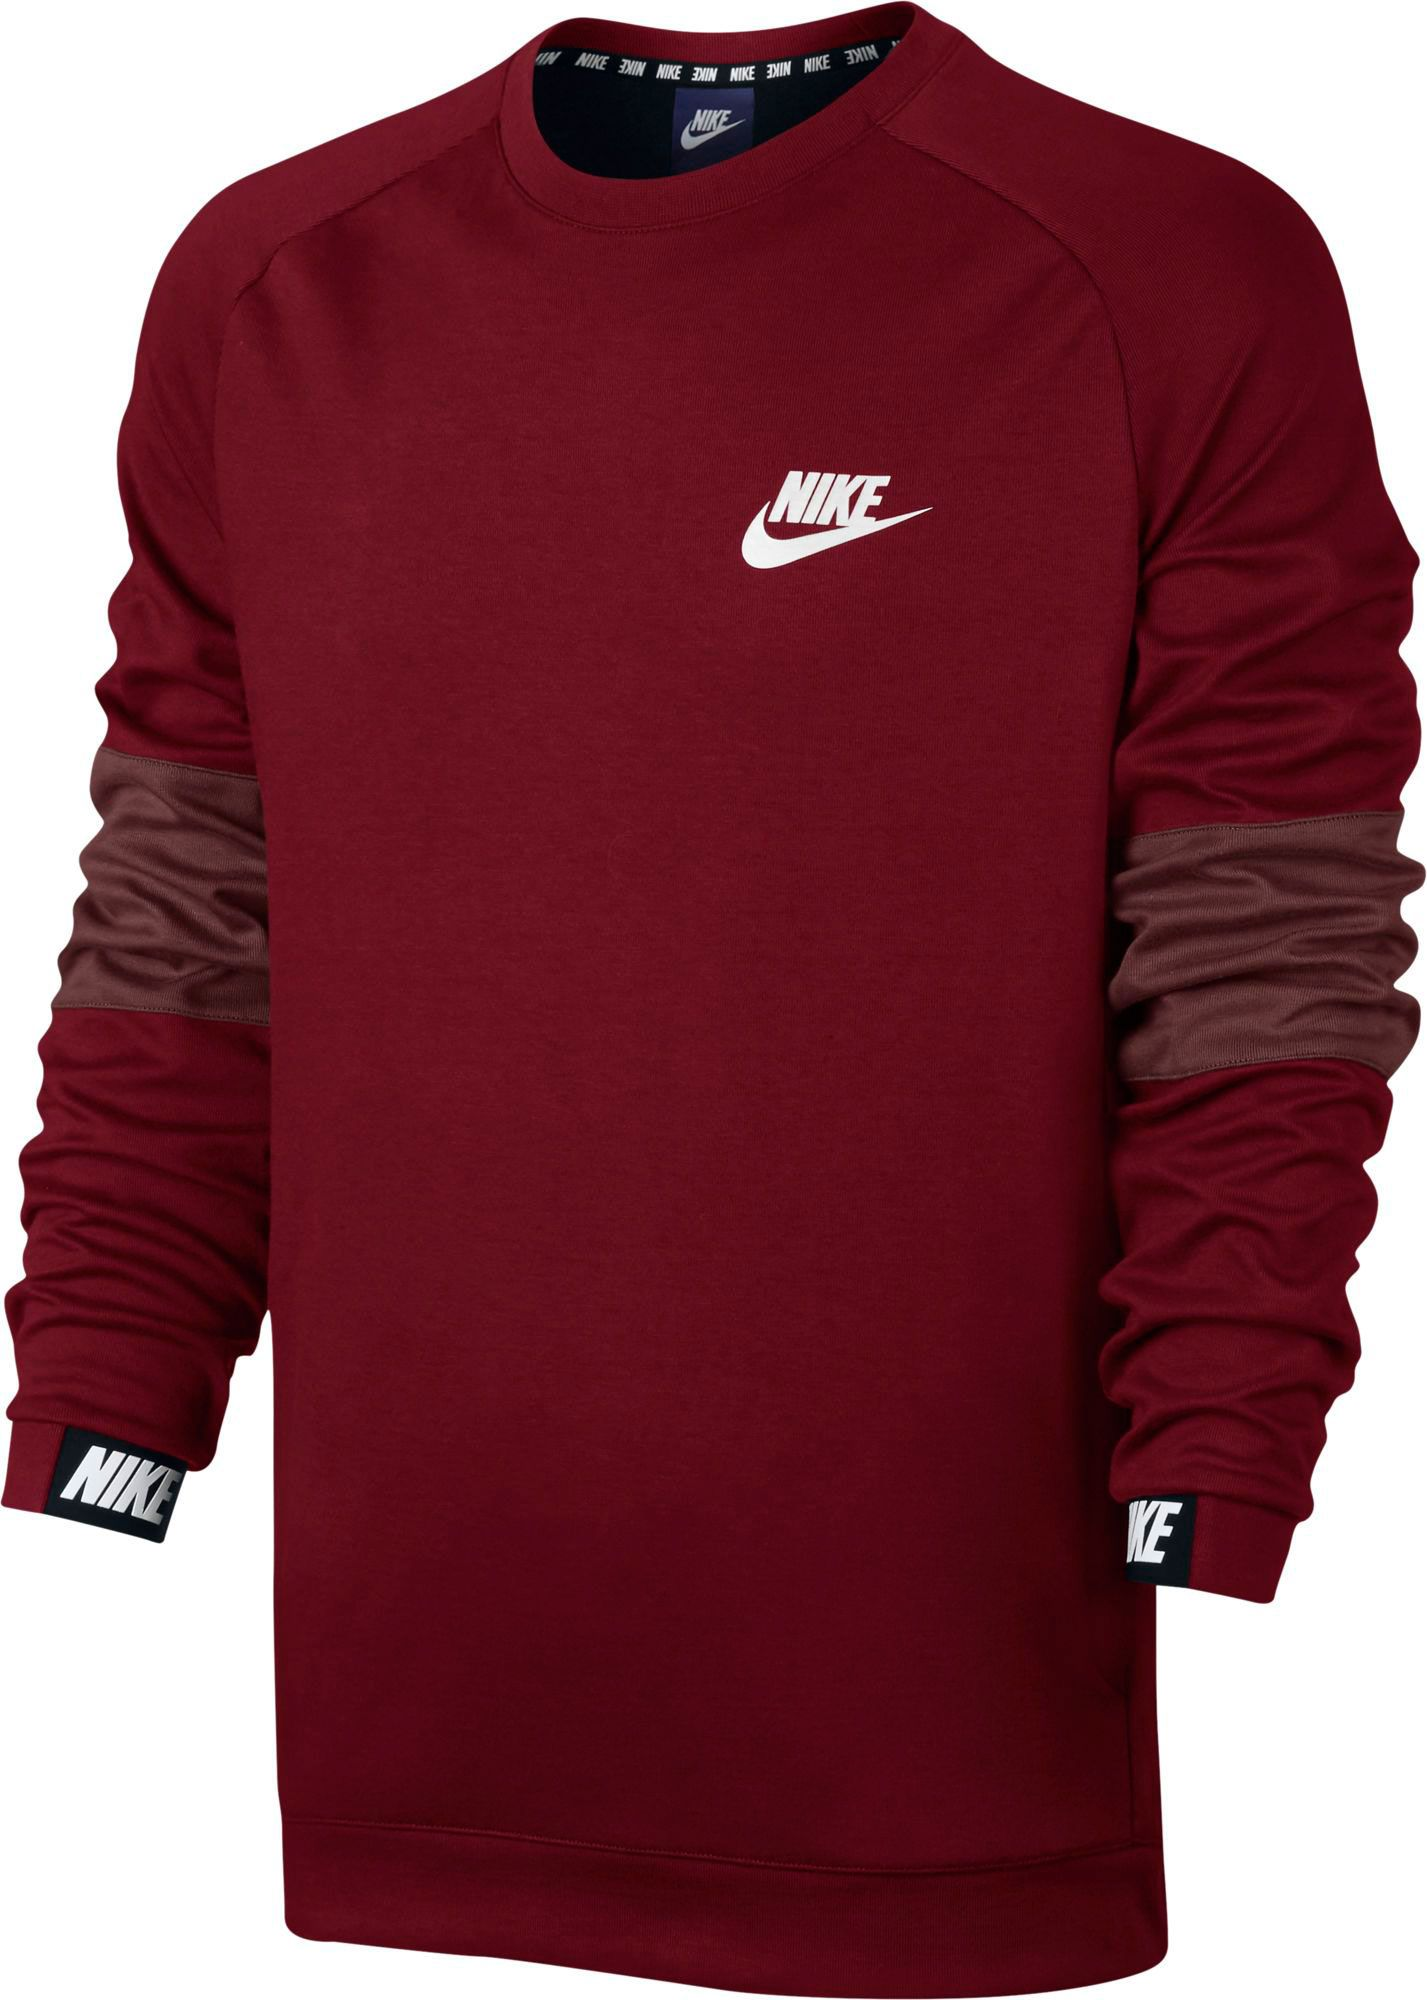 Men's Pullover Crew Neck Sweatshirts | DICK'S Sporting Goods